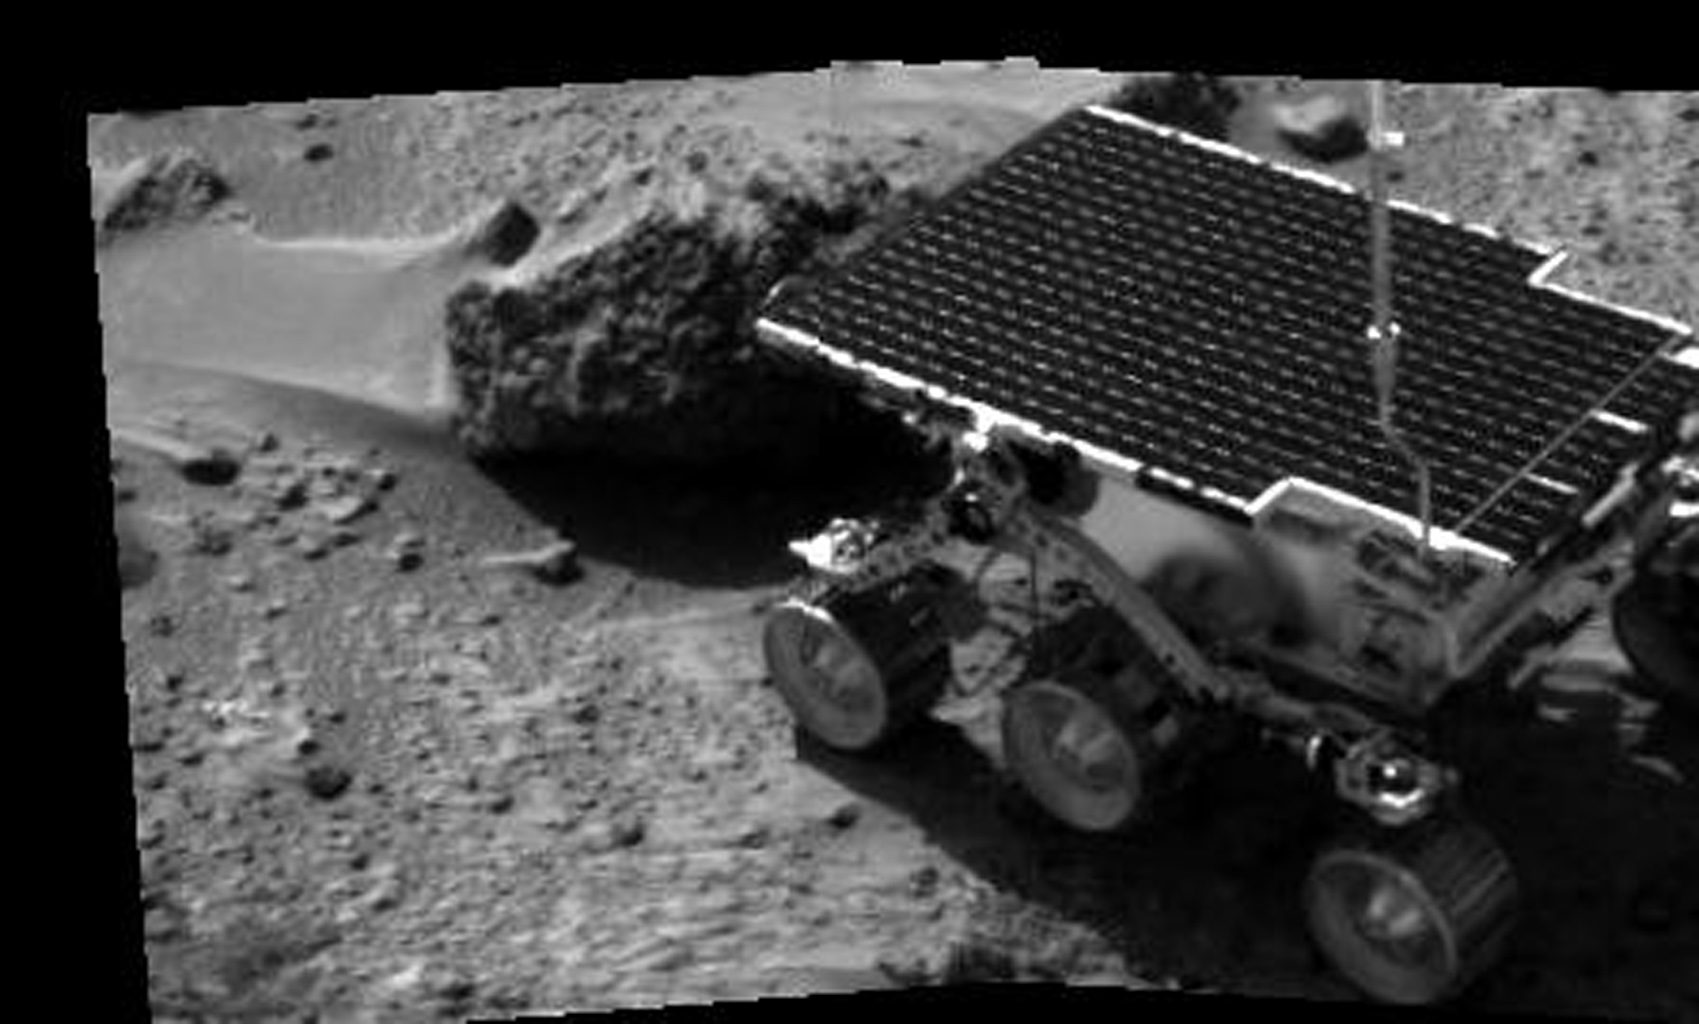 NASA's Sojourner's first analysis of a rock on Mars began on Sol 3 with the study of Barnacle Bill, a nearby rock named for its rough surface. The image was taken by the Imager for Mars Pathfinder (IMP) after its deployment on Sol 3.